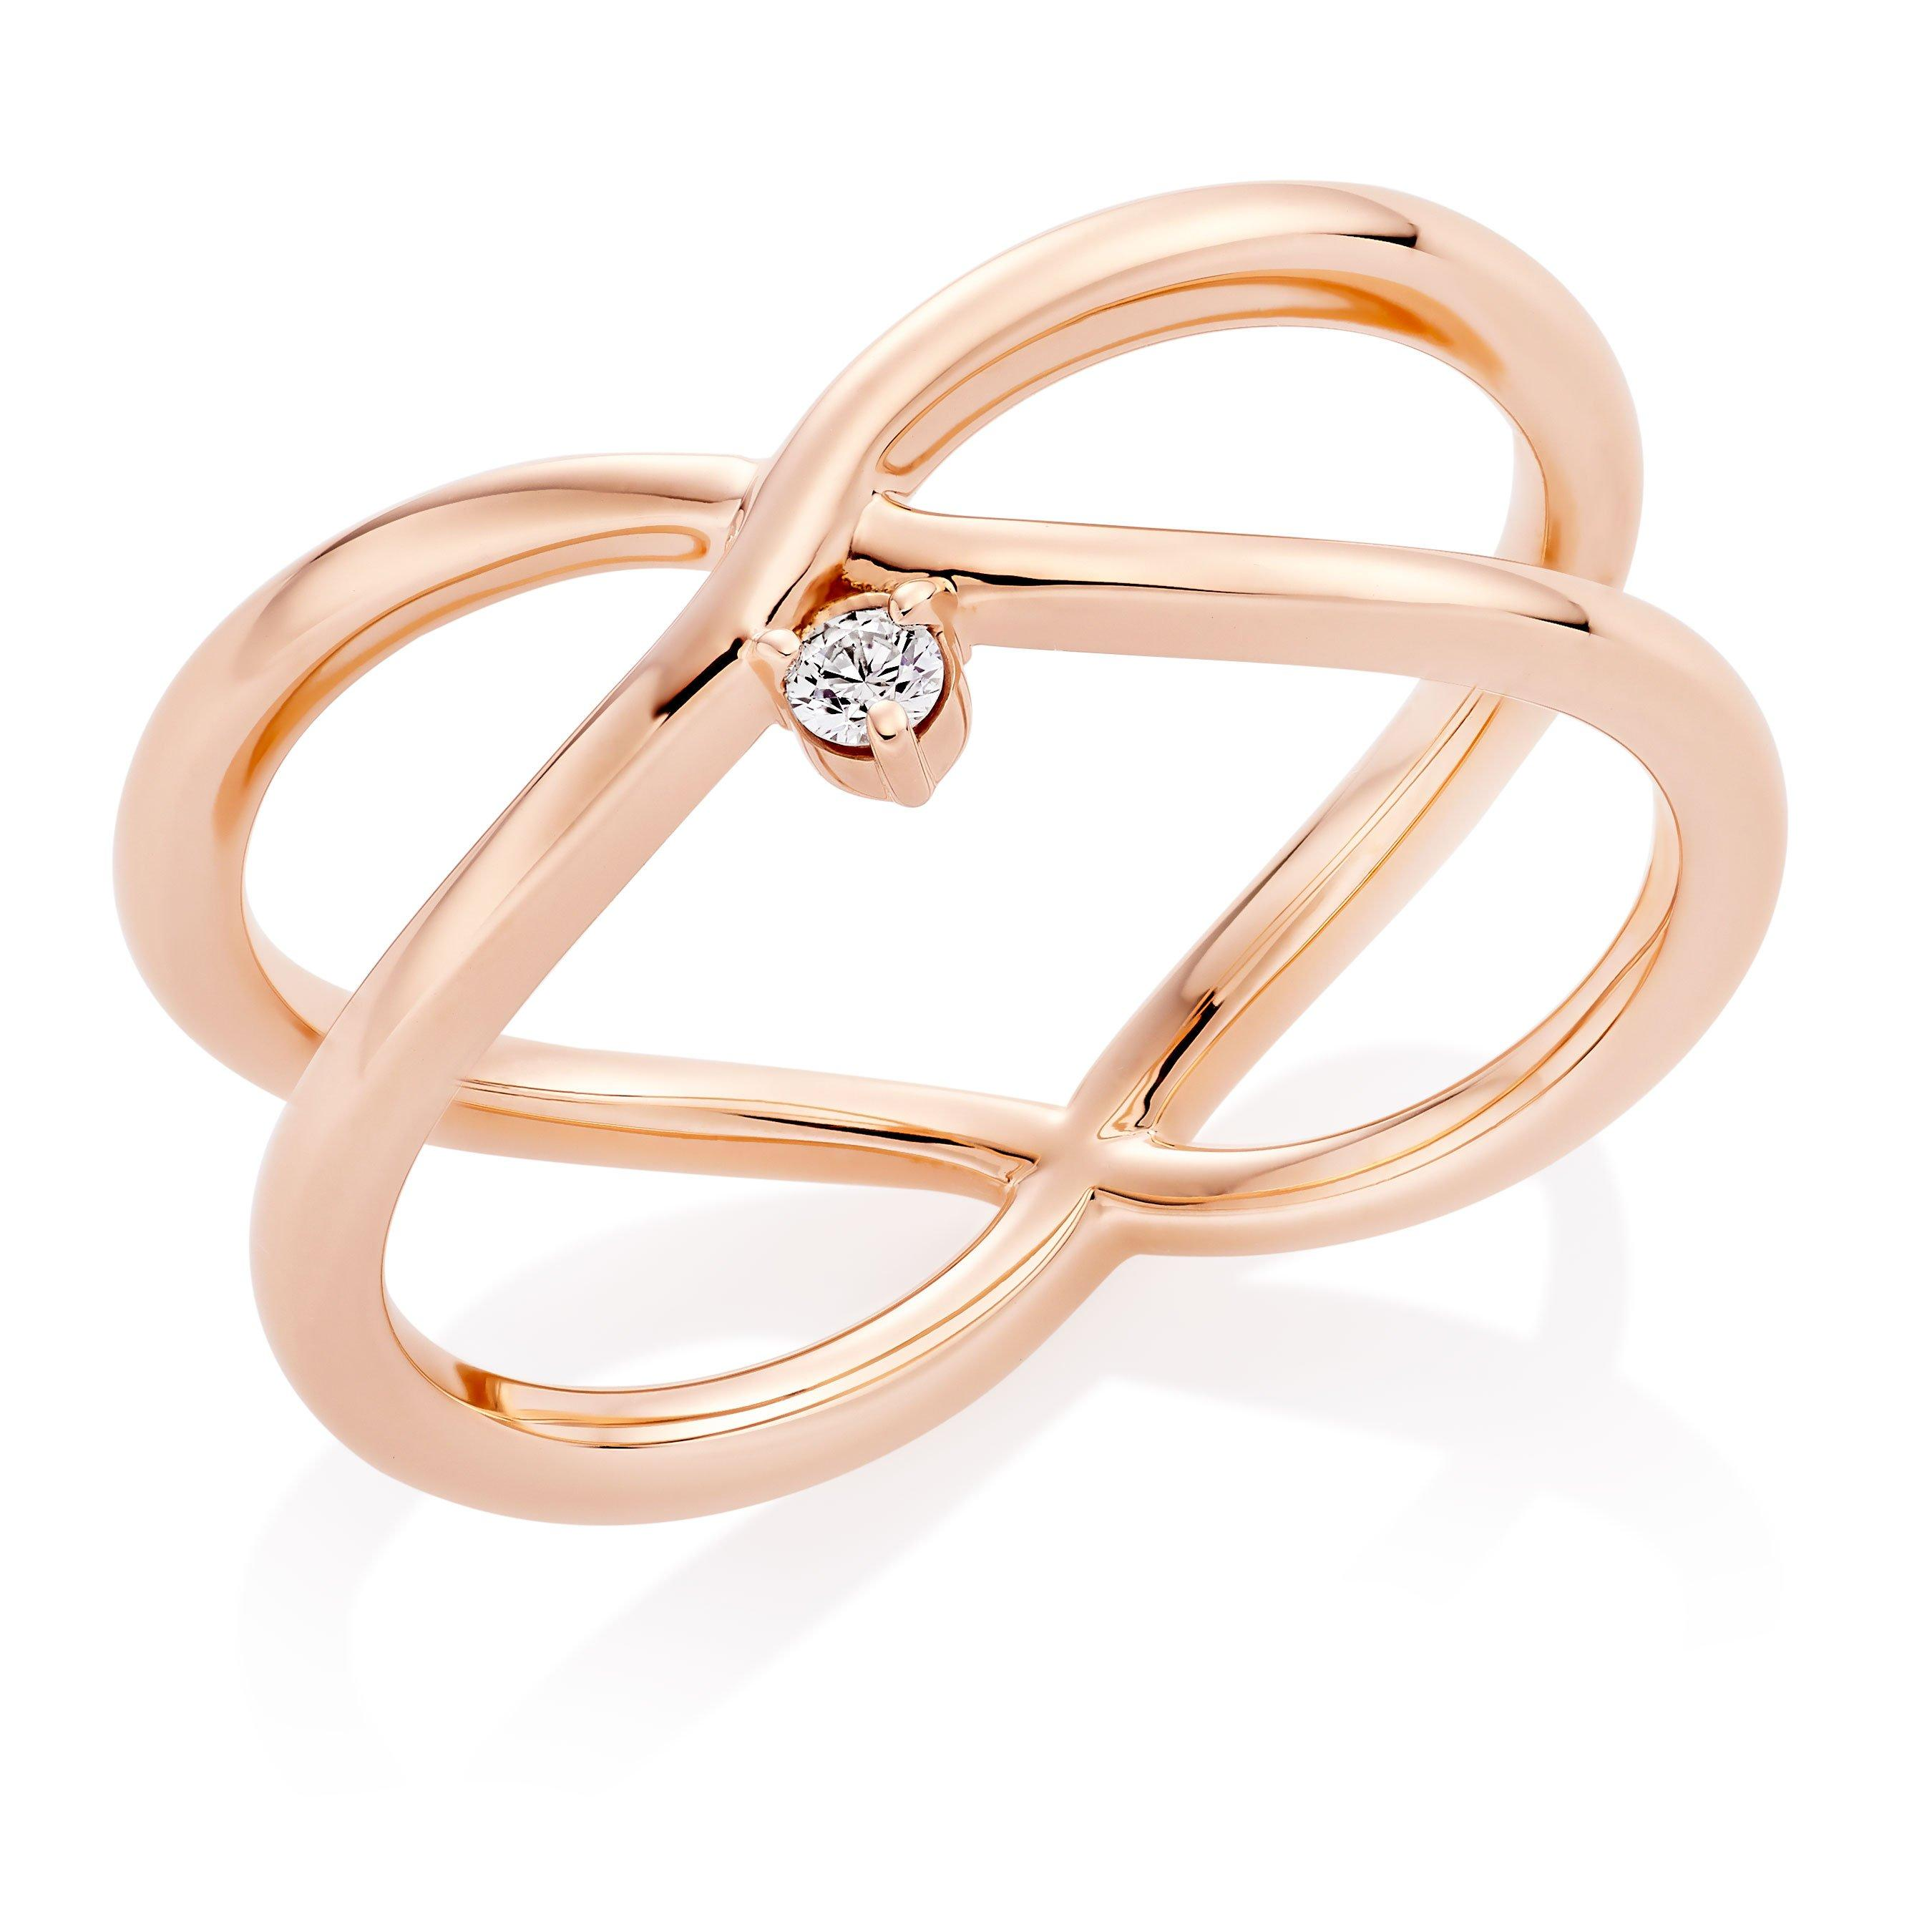 Hearts On Fire Hayley Paige Love Code 18ct Rose Gold Diamond Ring